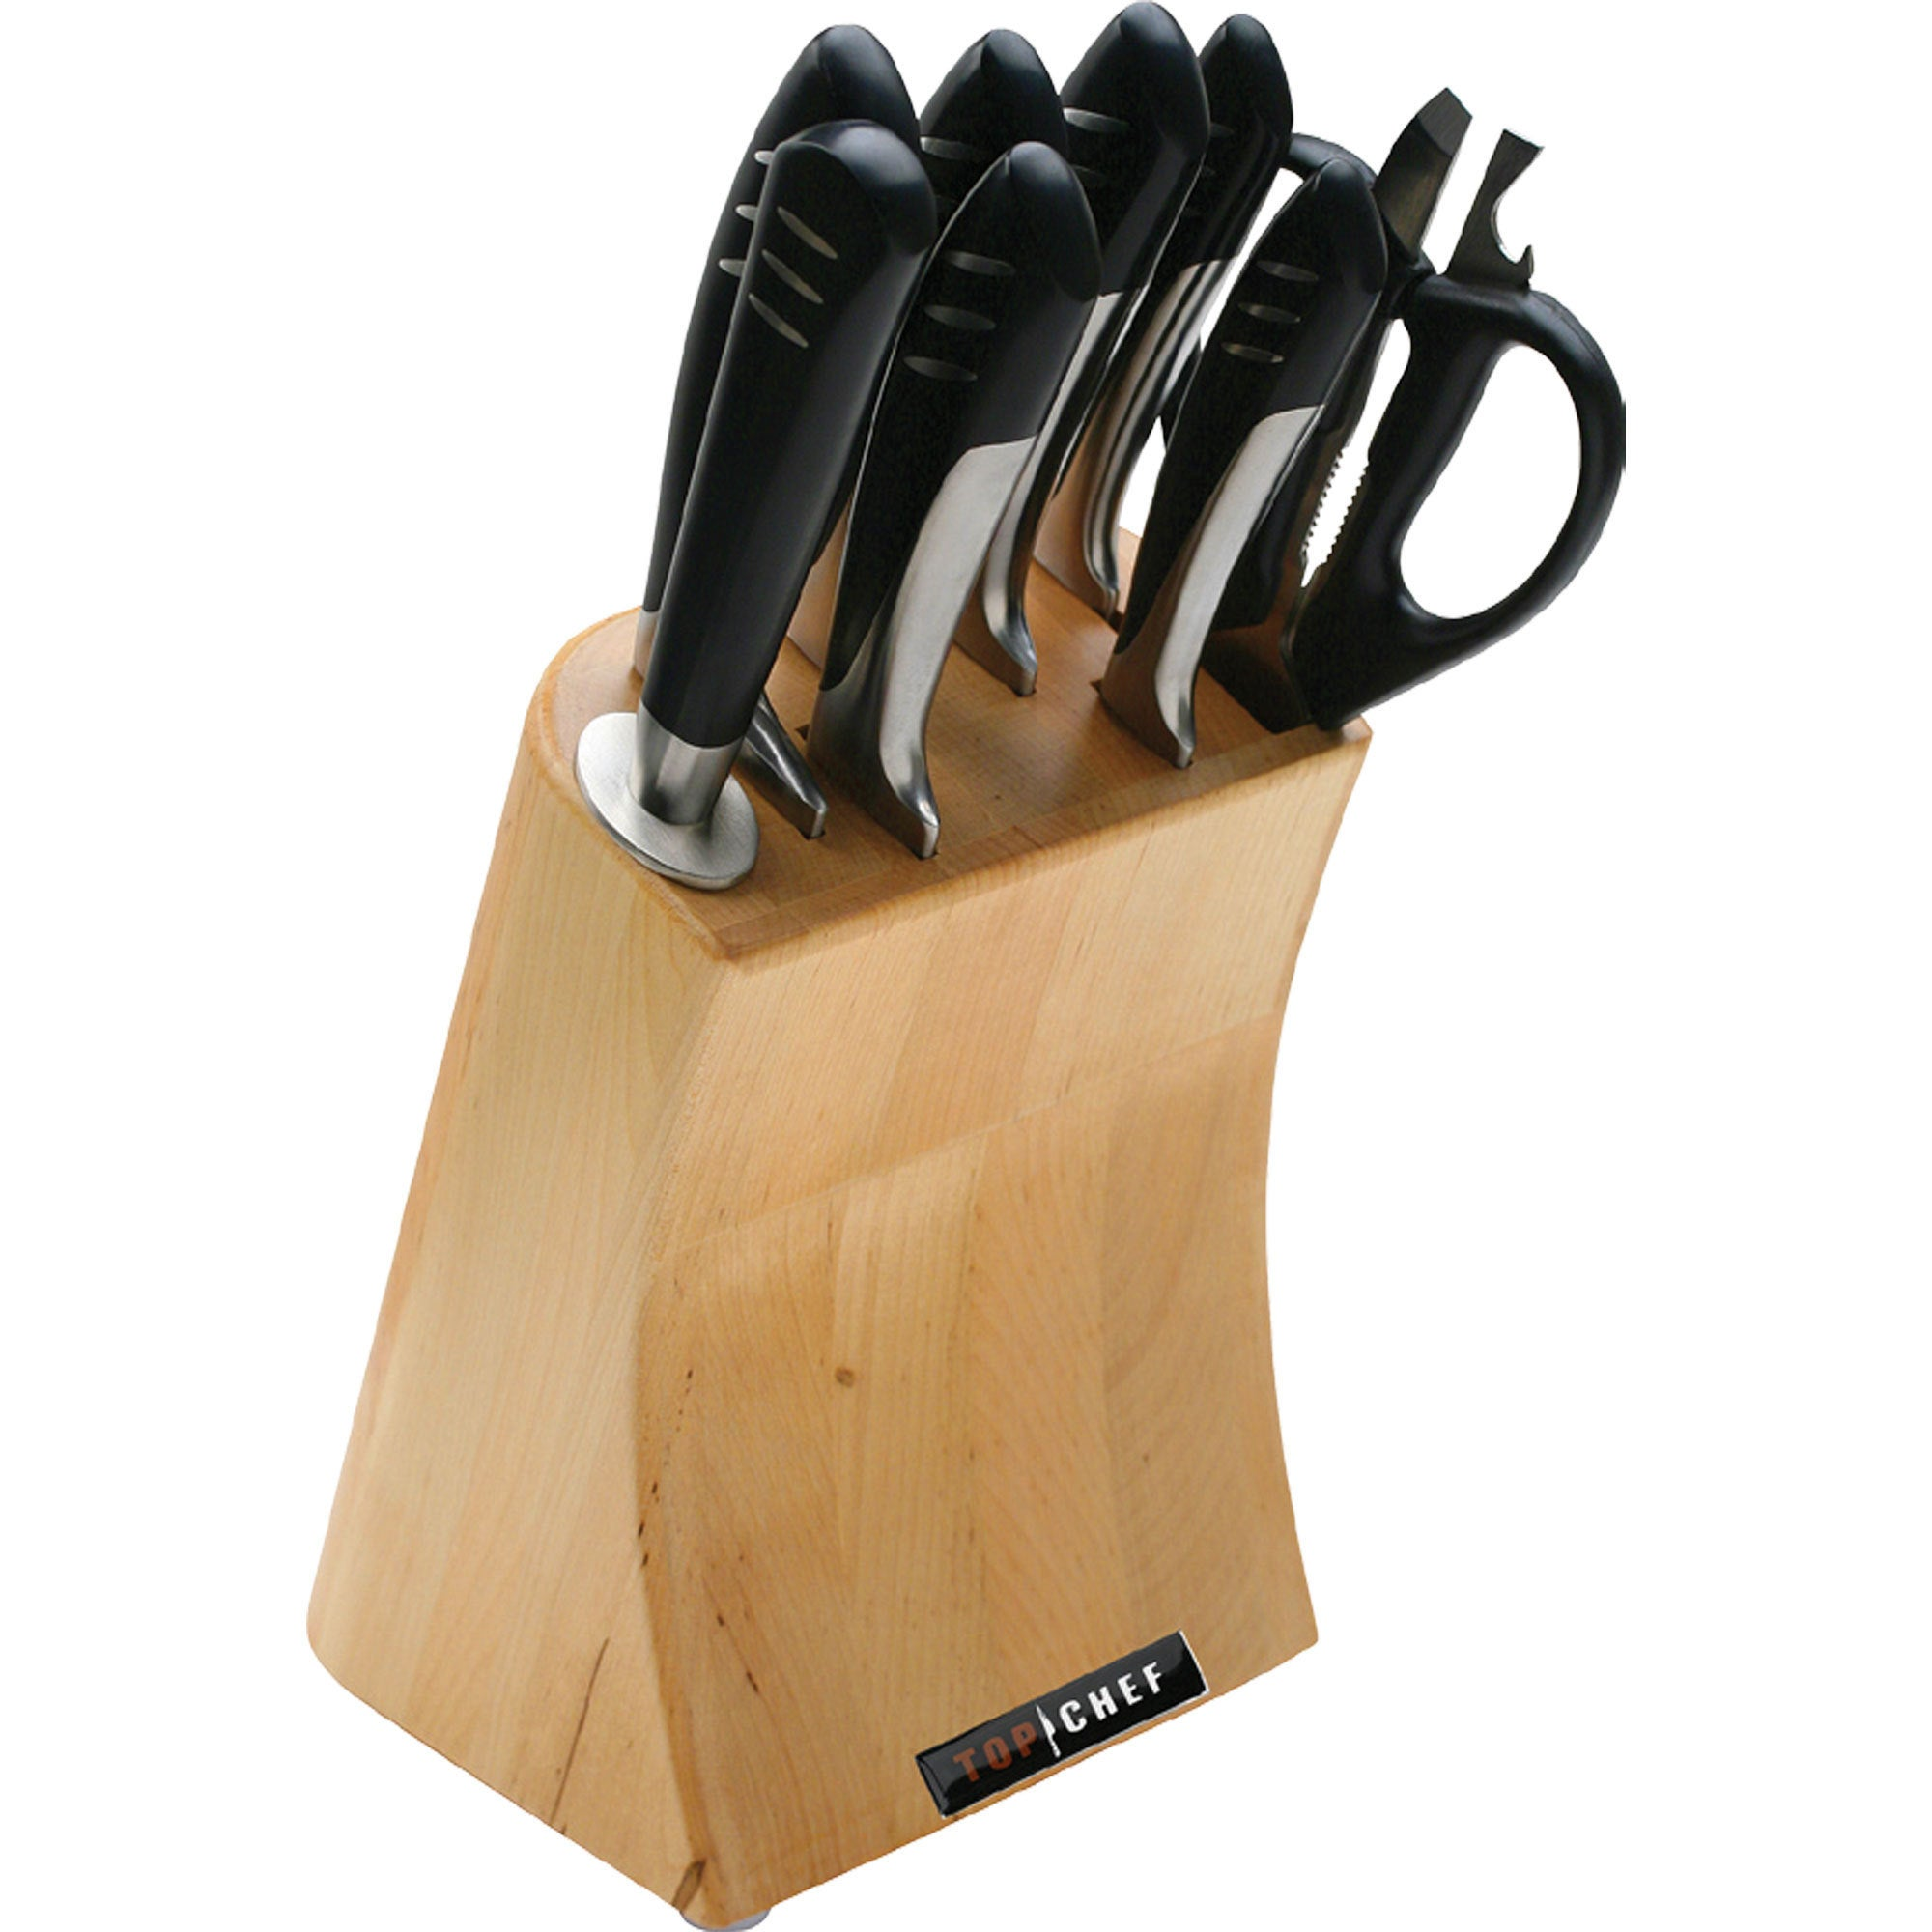 Master Cutlery Top Chef 9-piece Stainless Steel Knife Blo...